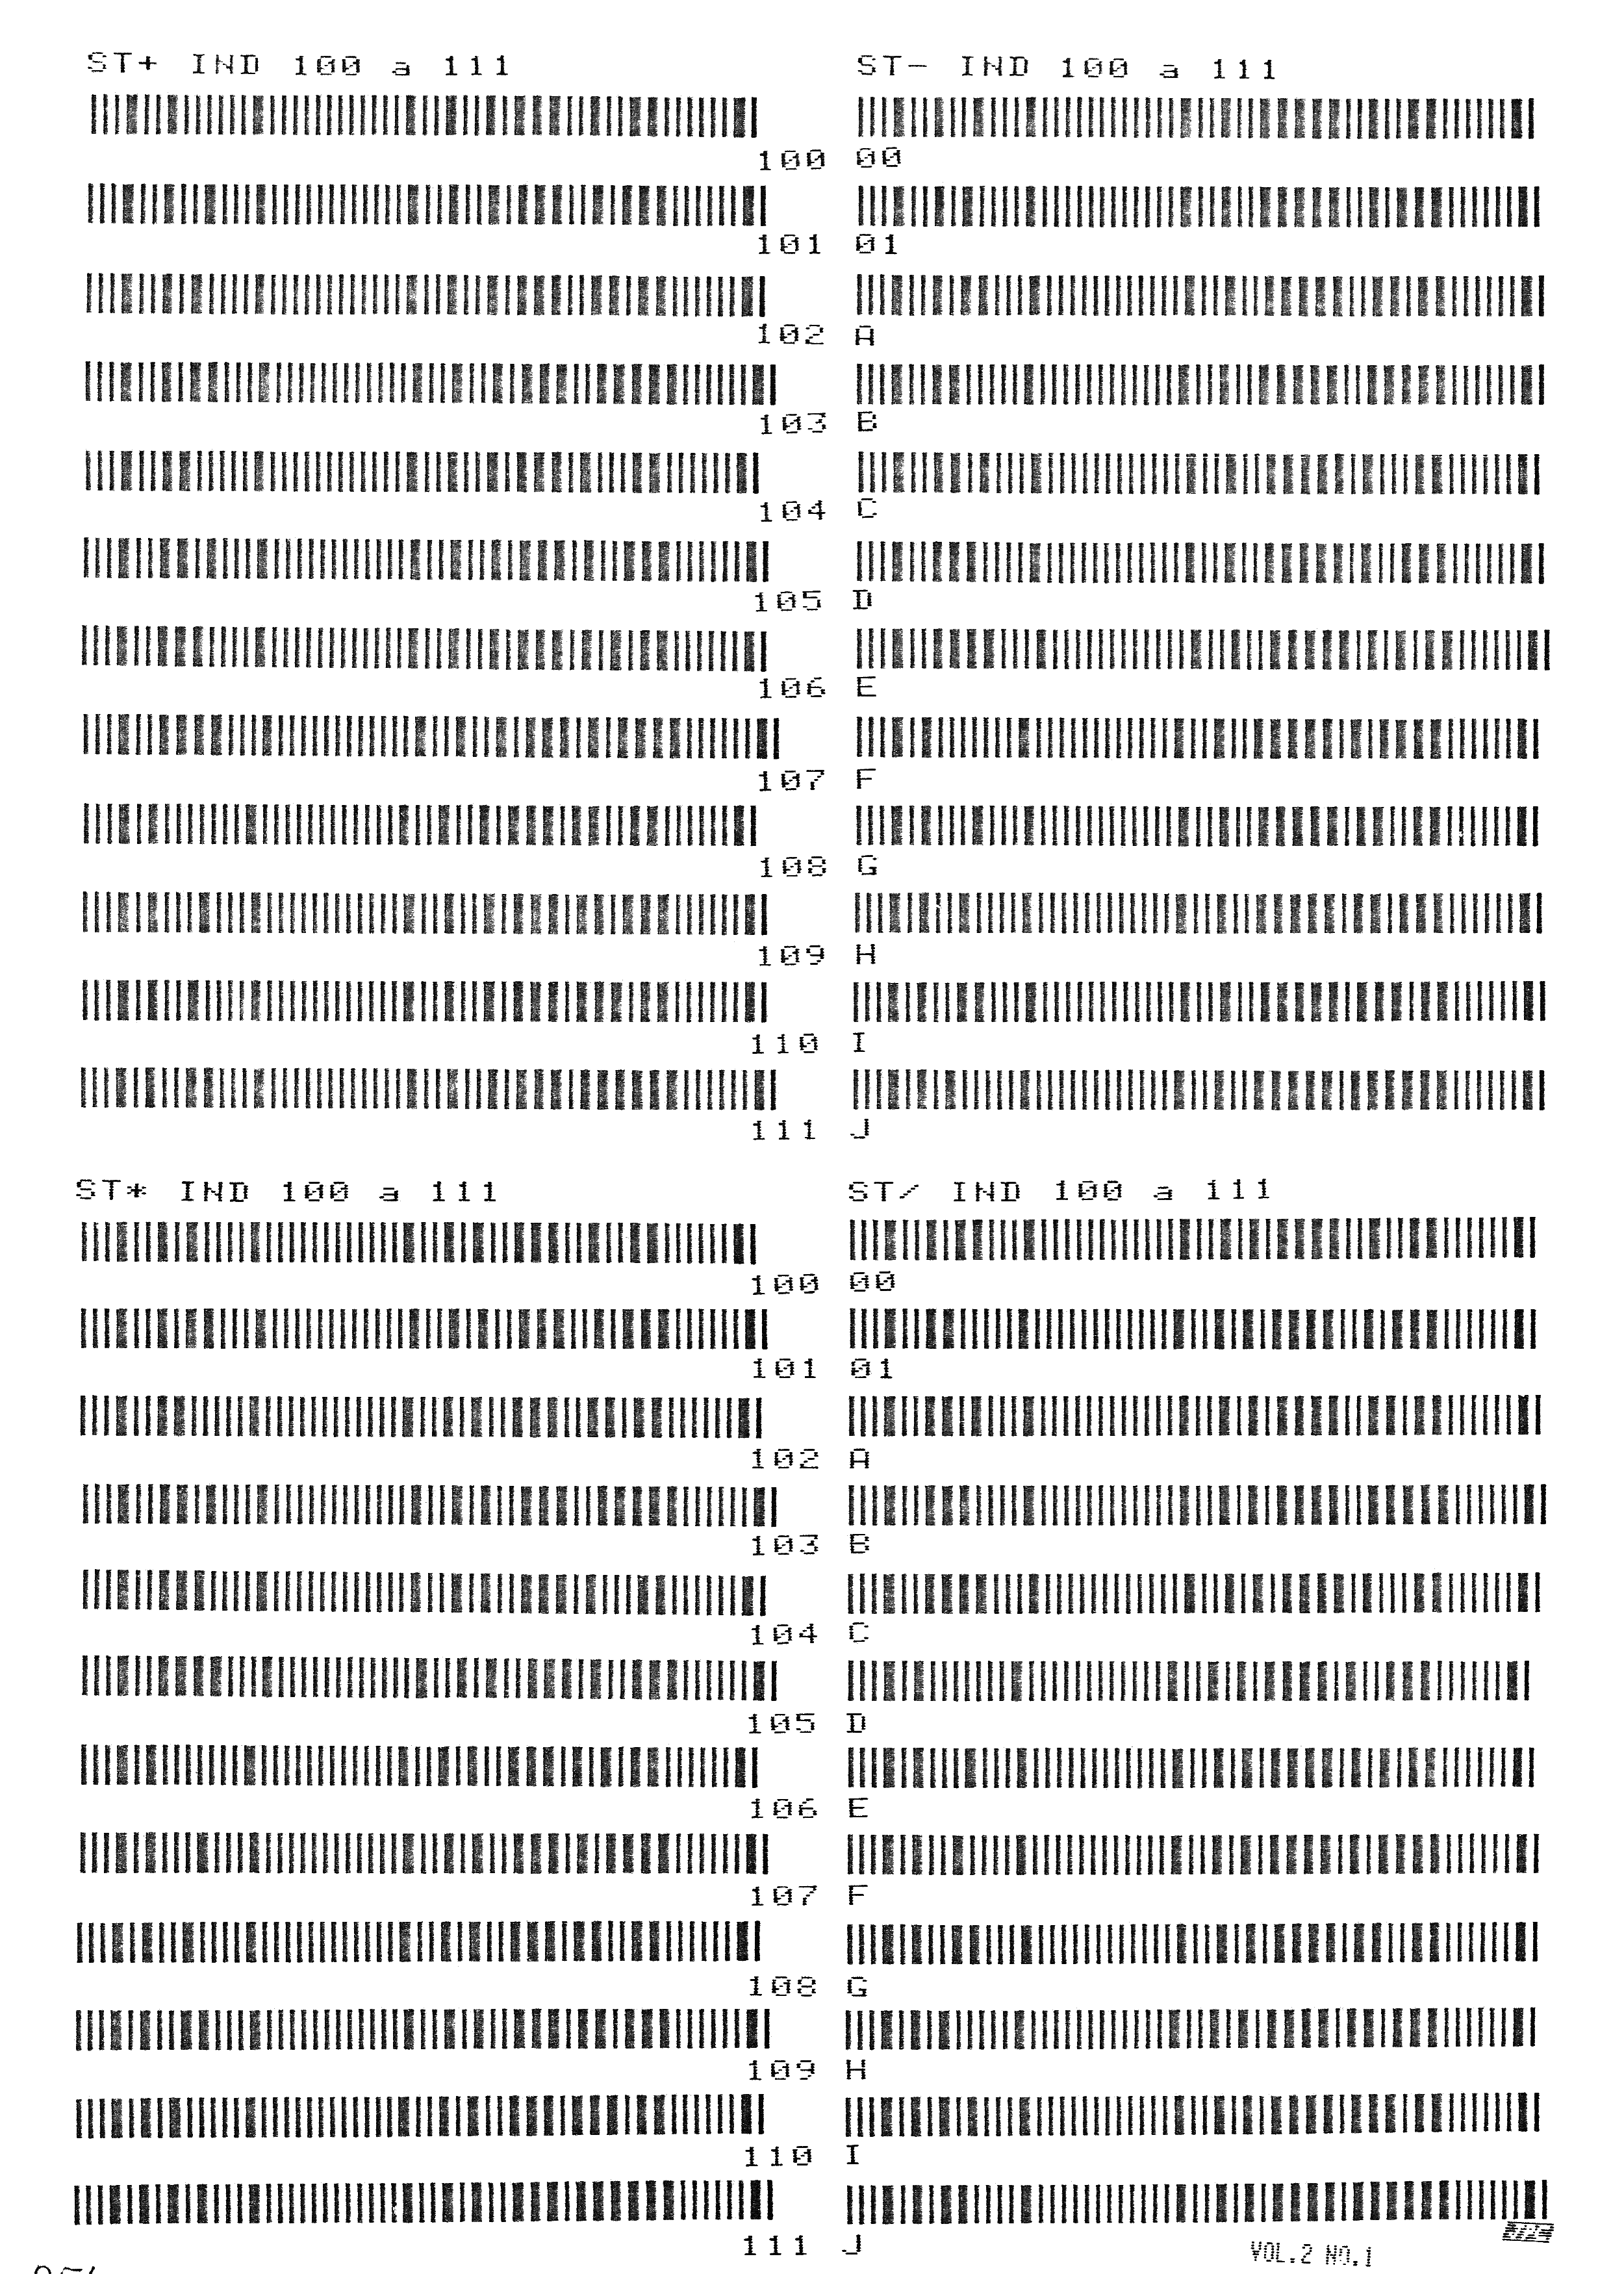 Jp-11-page-27-1000